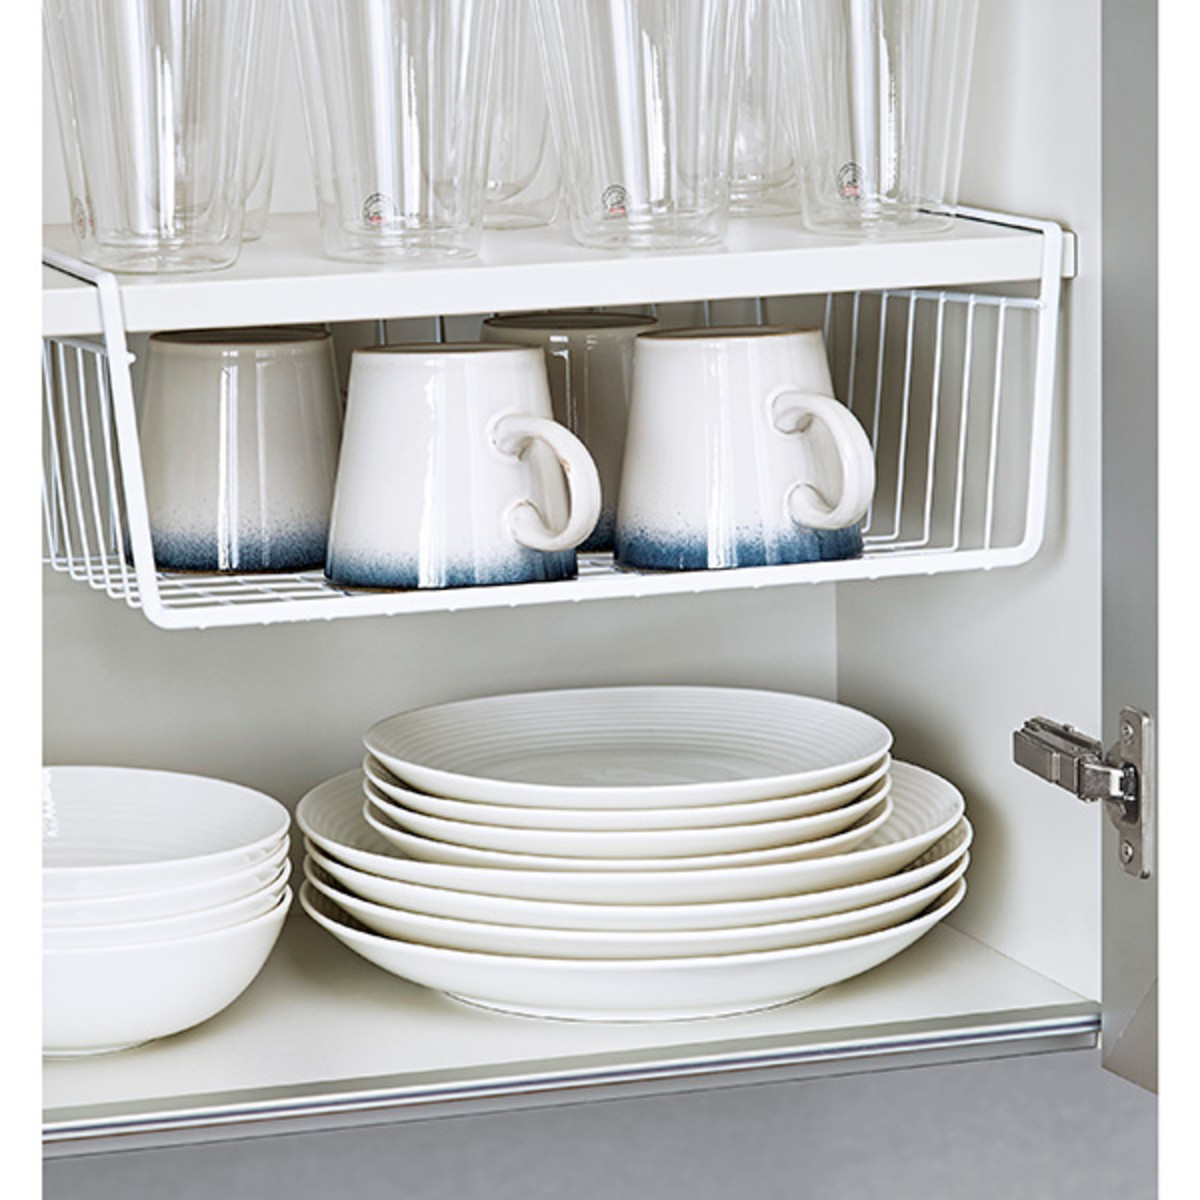 Vinyl-coated under the shelf. The baskets are great for plates or cups. Always slide one onto a kitchen shelf.